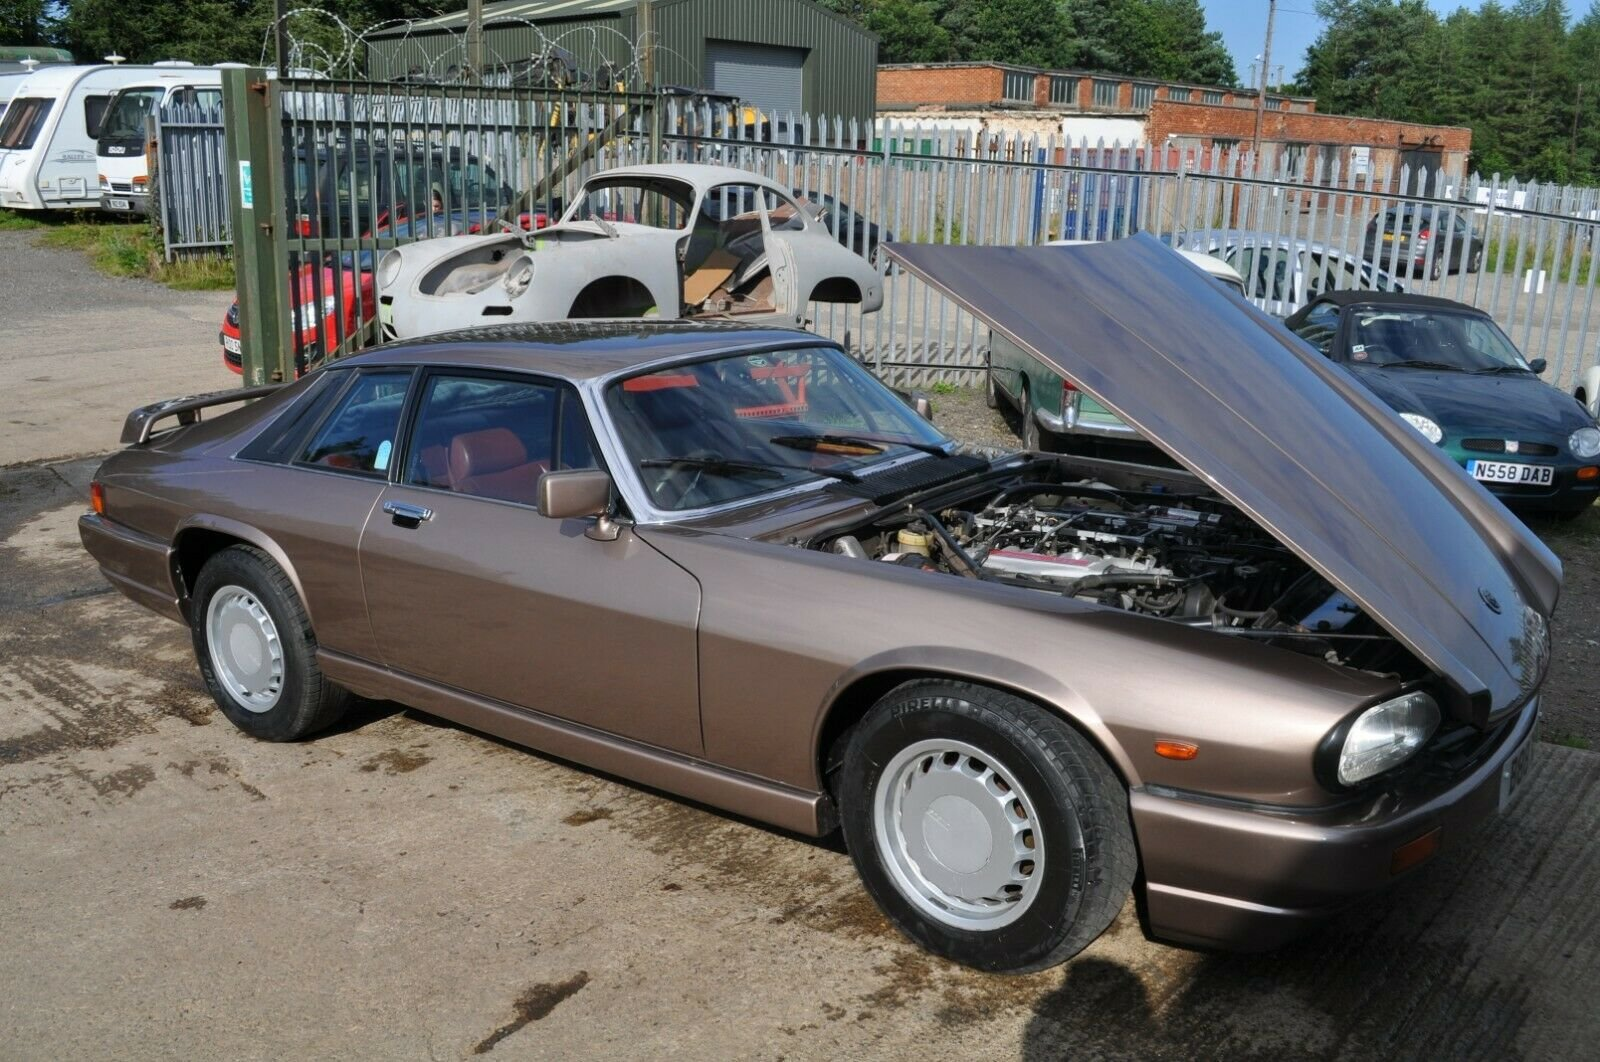 1984 JAGUAR XJS V12 5.3 HE VERY RARE GOOD CONDITION WITH MOT TWR For Sale (picture 3 of 6)